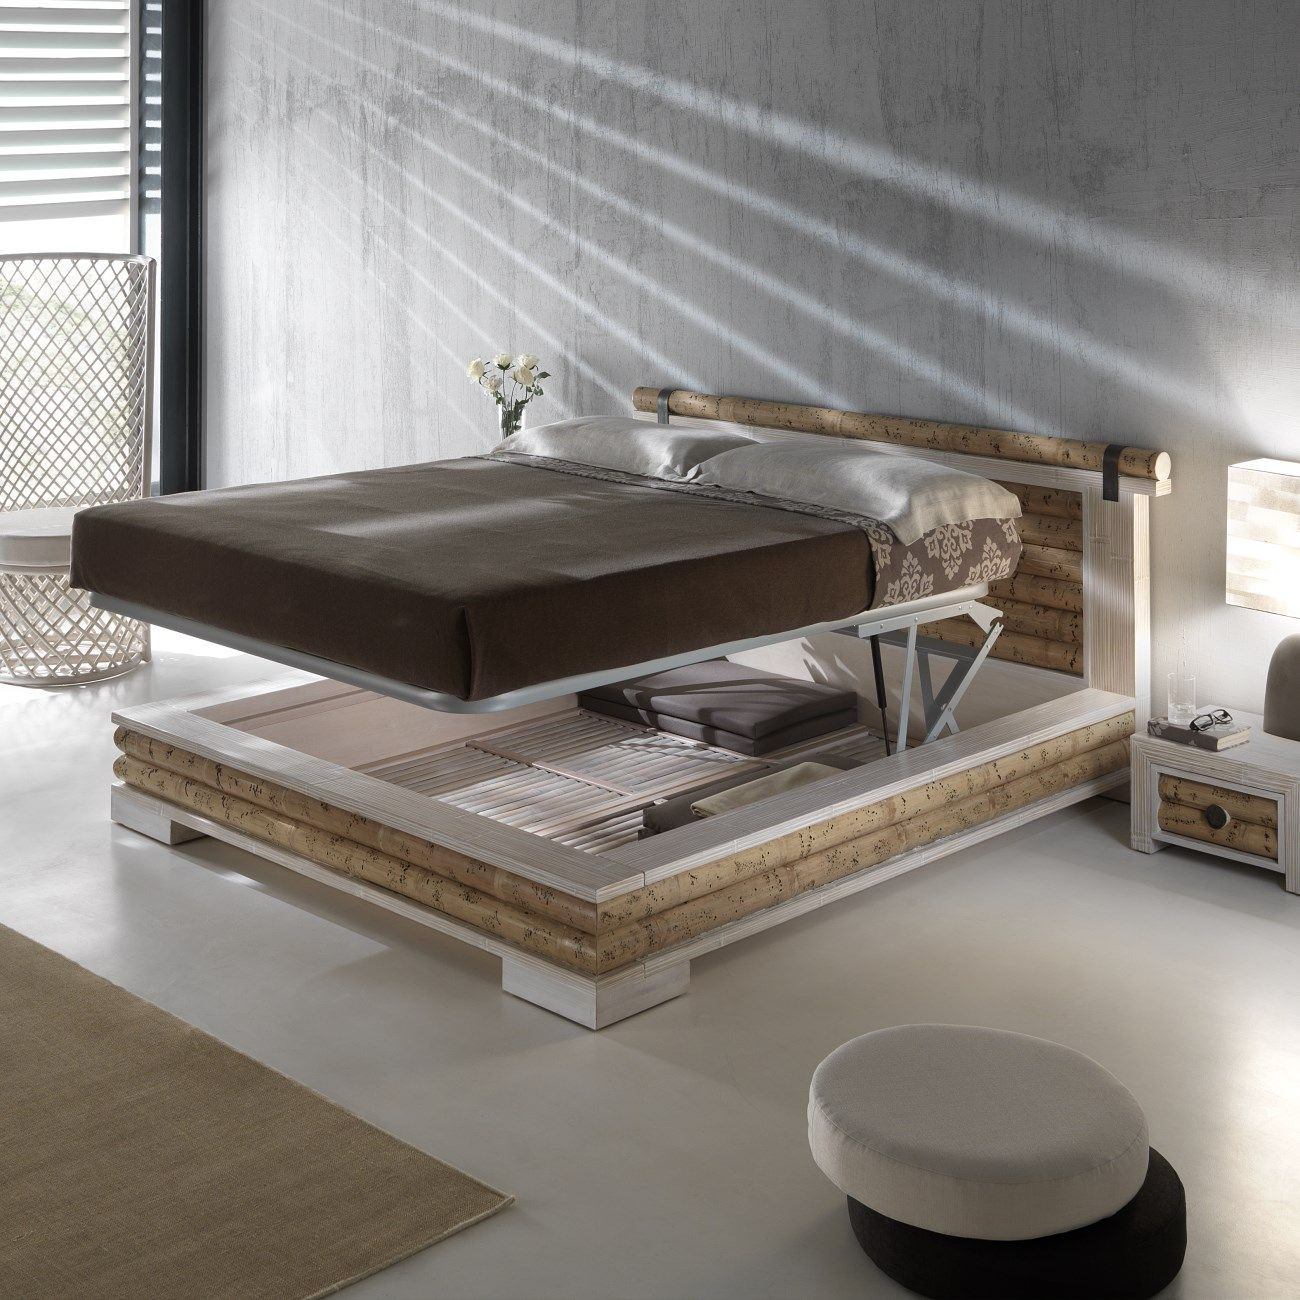 Wonderful Genial Bett Mit Bettkasten 180x200 Design Inspirations